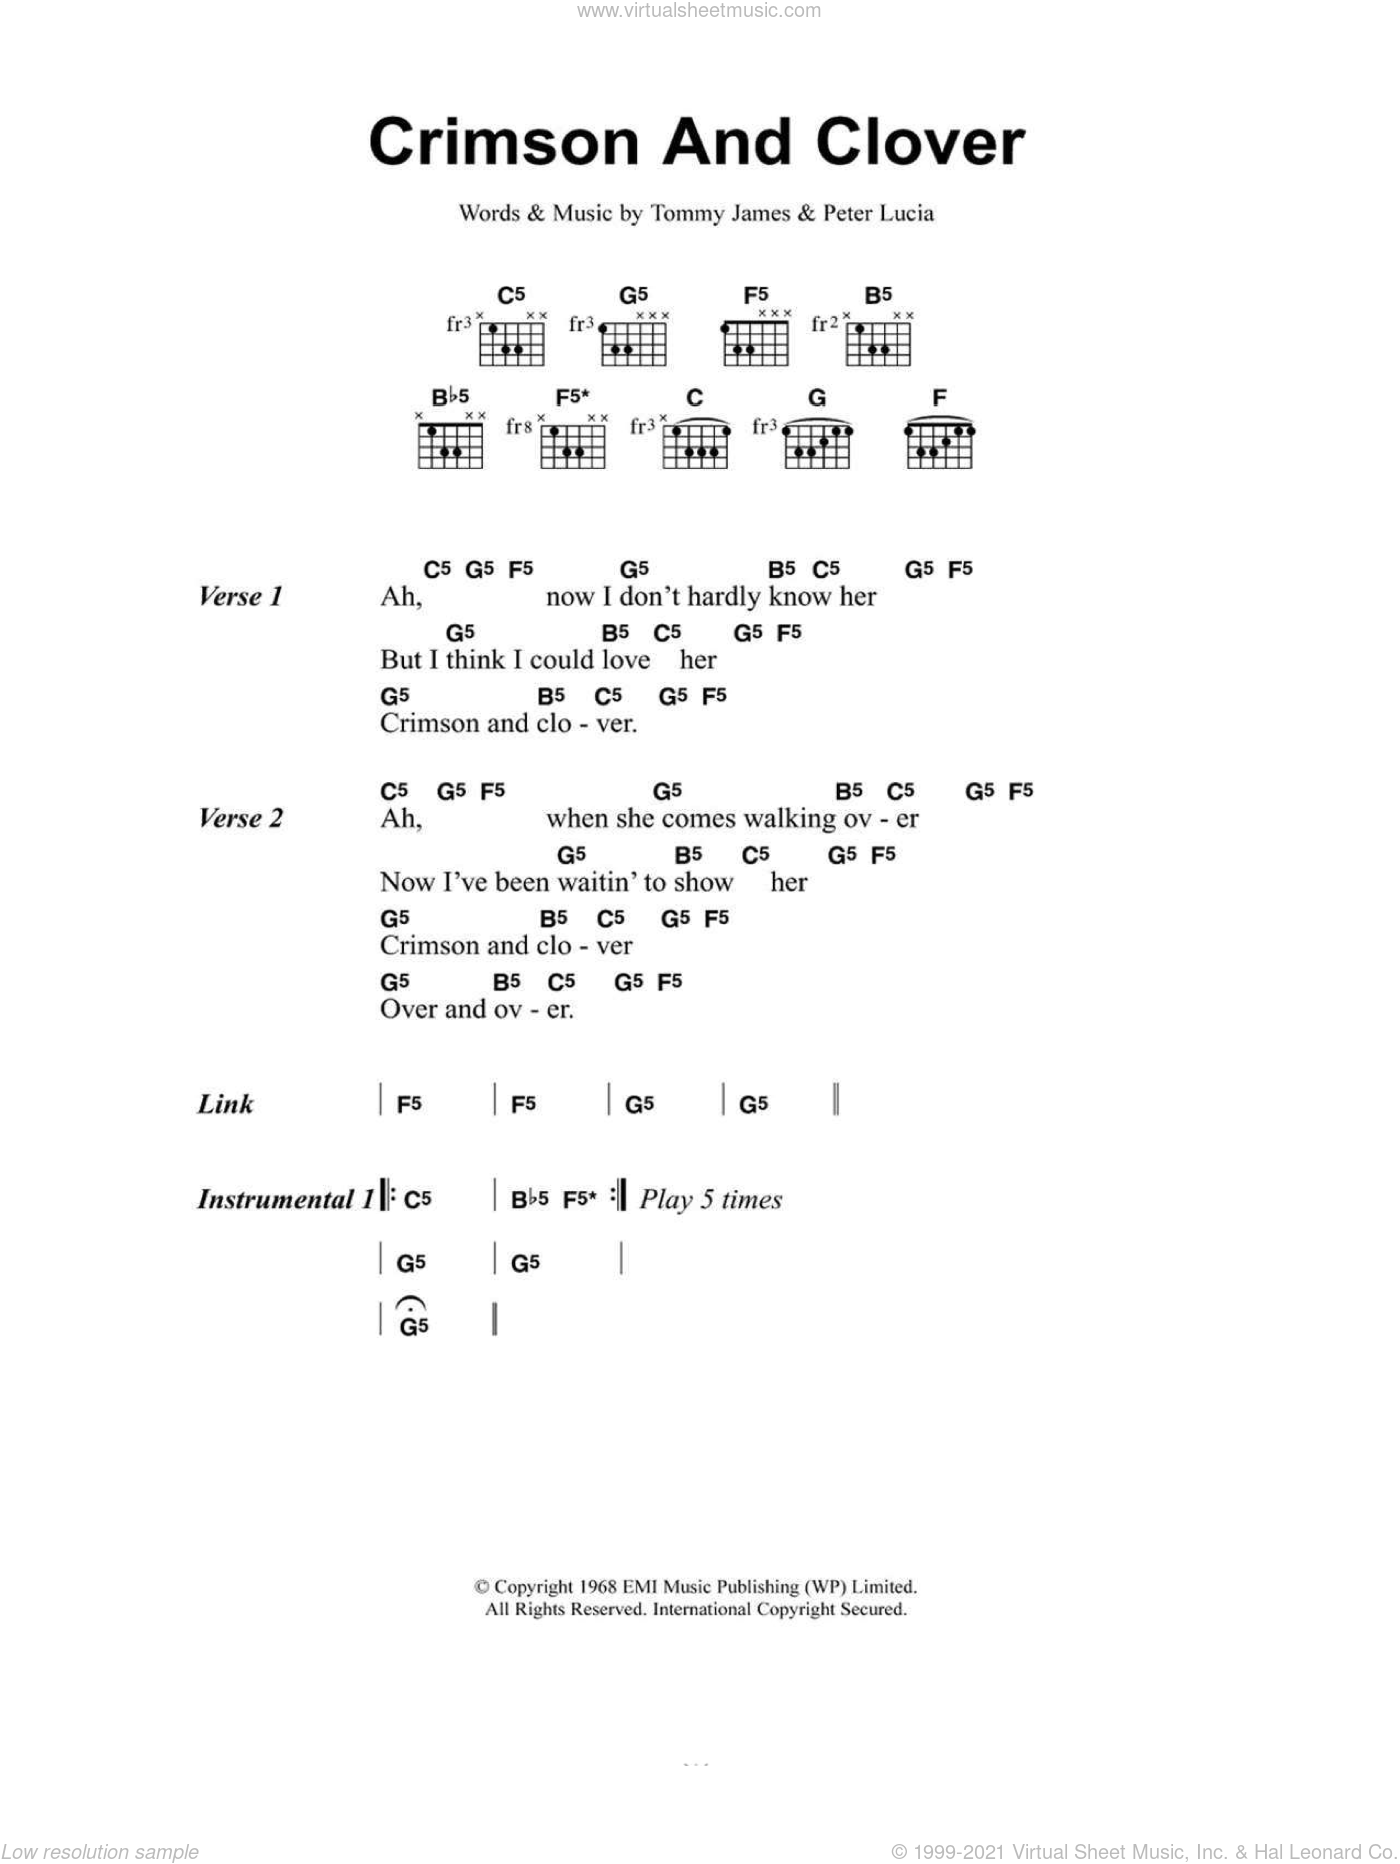 Crimson And Clover sheet music for guitar (chords) by Tommy James, Joan Jett and Peter Lucia. Score Image Preview.